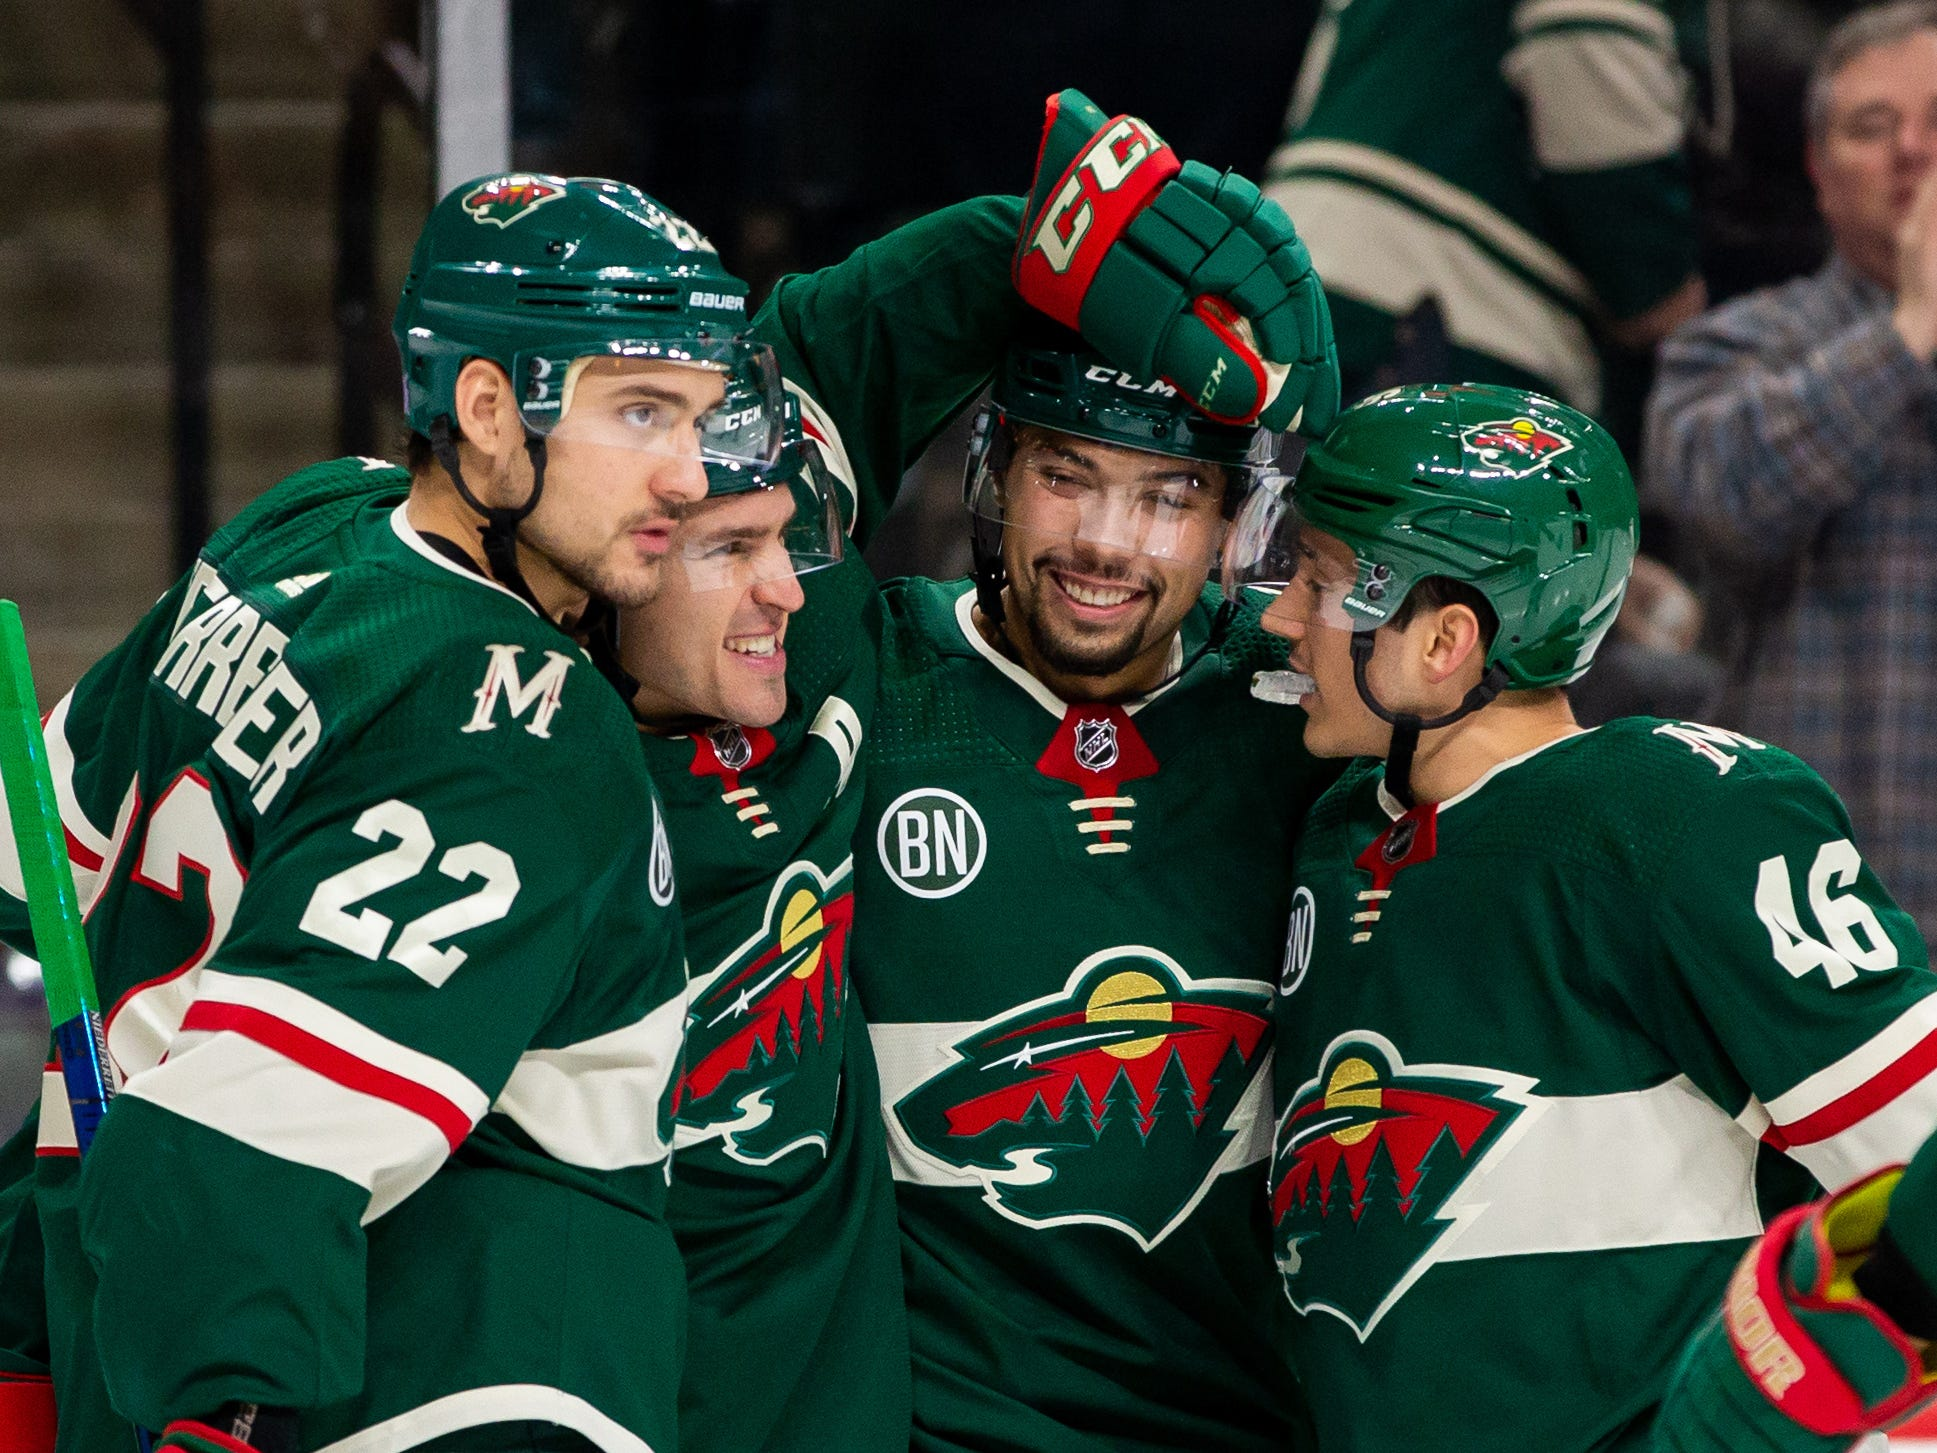 Nov 27, 2018; Saint Paul, MN, USA; Minnesota Wild forward Zach Parise (11) celebrates his goal with forward Nino Niederreiter (22), defenseman Matt Dumba (24), and defenseman Jared Spurgeon (46) in the second period against Phoenix Coyotes  at Xcel Energy Center. Mandatory Credit: Brad Rempel-USA TODAY Sports